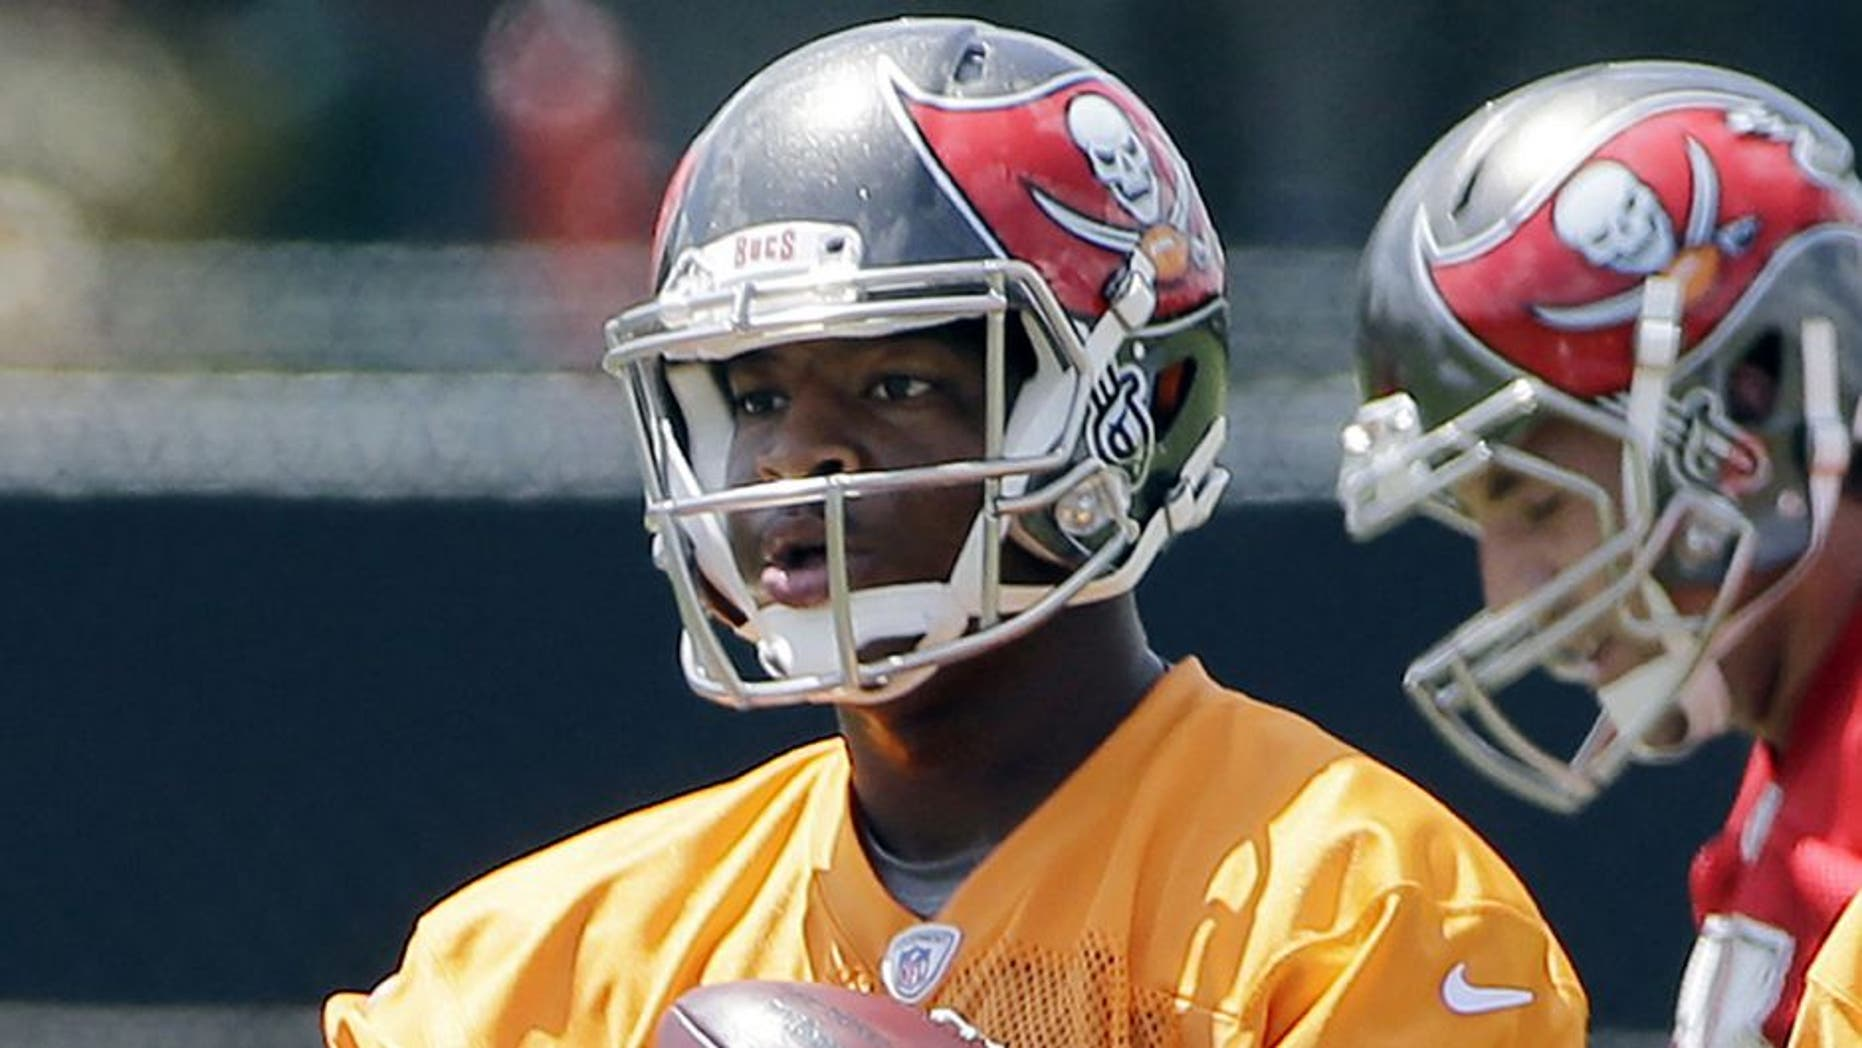 Tampa Bay Buccaneers quarterback Jameis Winston carries a handful of footballs during an NFL football organized team activity, Thursday, June 4, 2015, in Tampa, Fla. (AP Photo/Chris O'Meara)